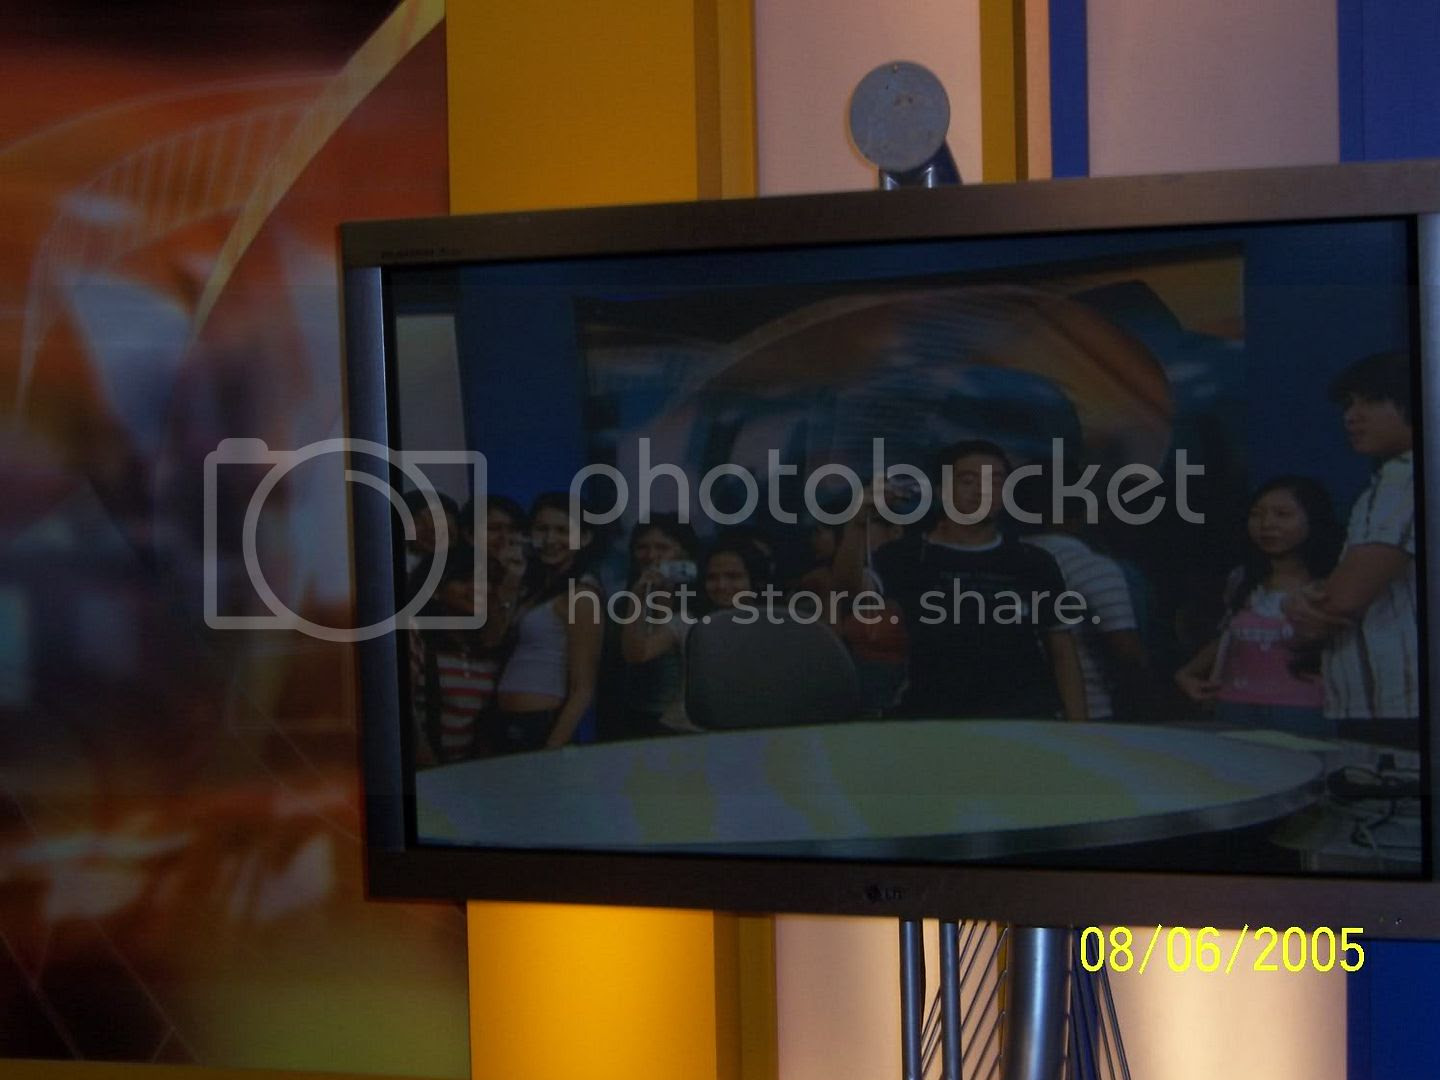 Me at the ANC set, almost seen on the television. This shot just looks nice. Image hosted by Photobucket